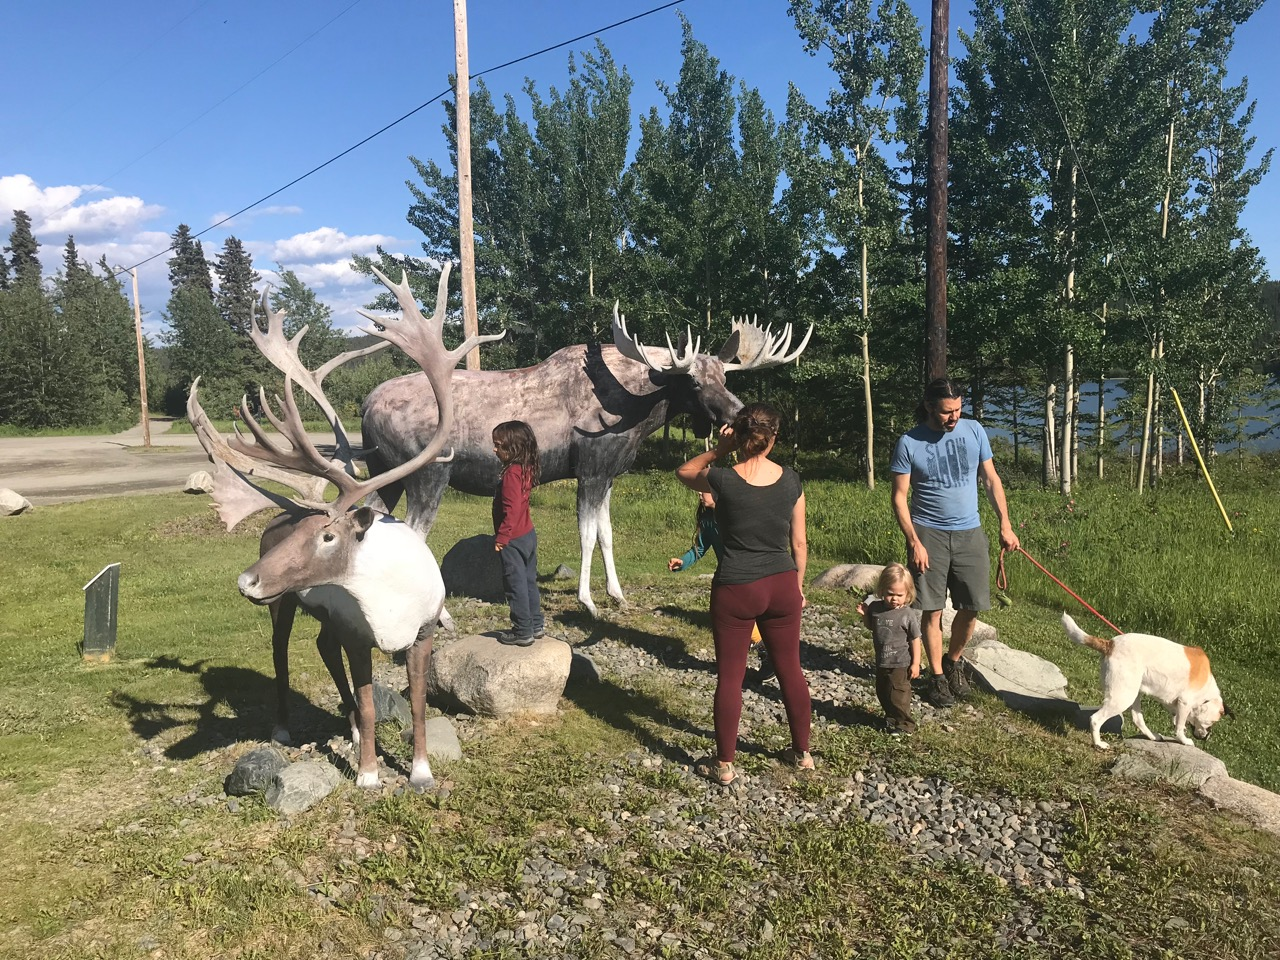 Even the fake moose are bigger than us!